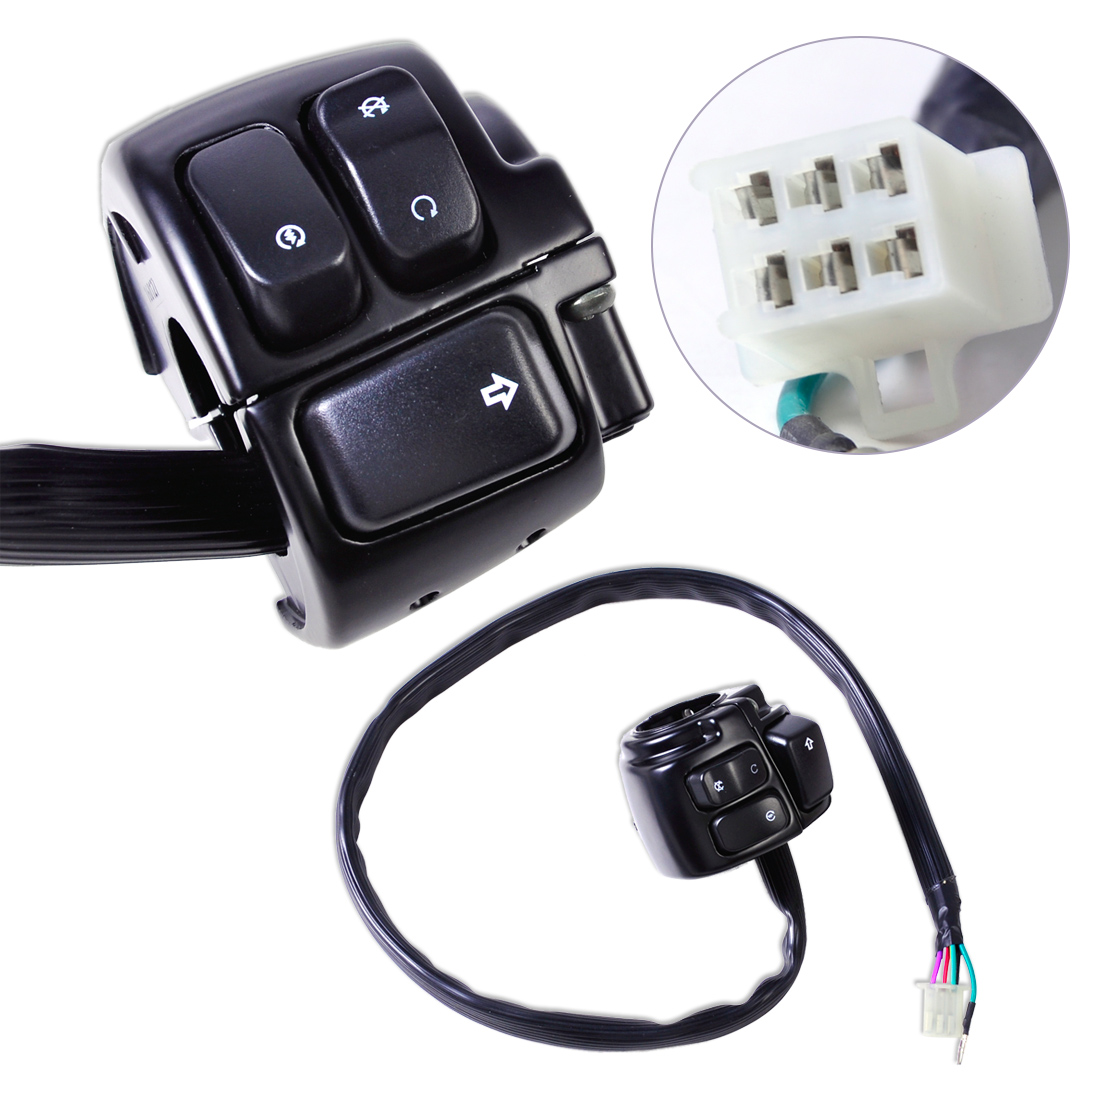 dwcx new motorcycle 1 handlebar ignition kill switch wiring harness for harley davidson softail dyna [ 1110 x 1110 Pixel ]